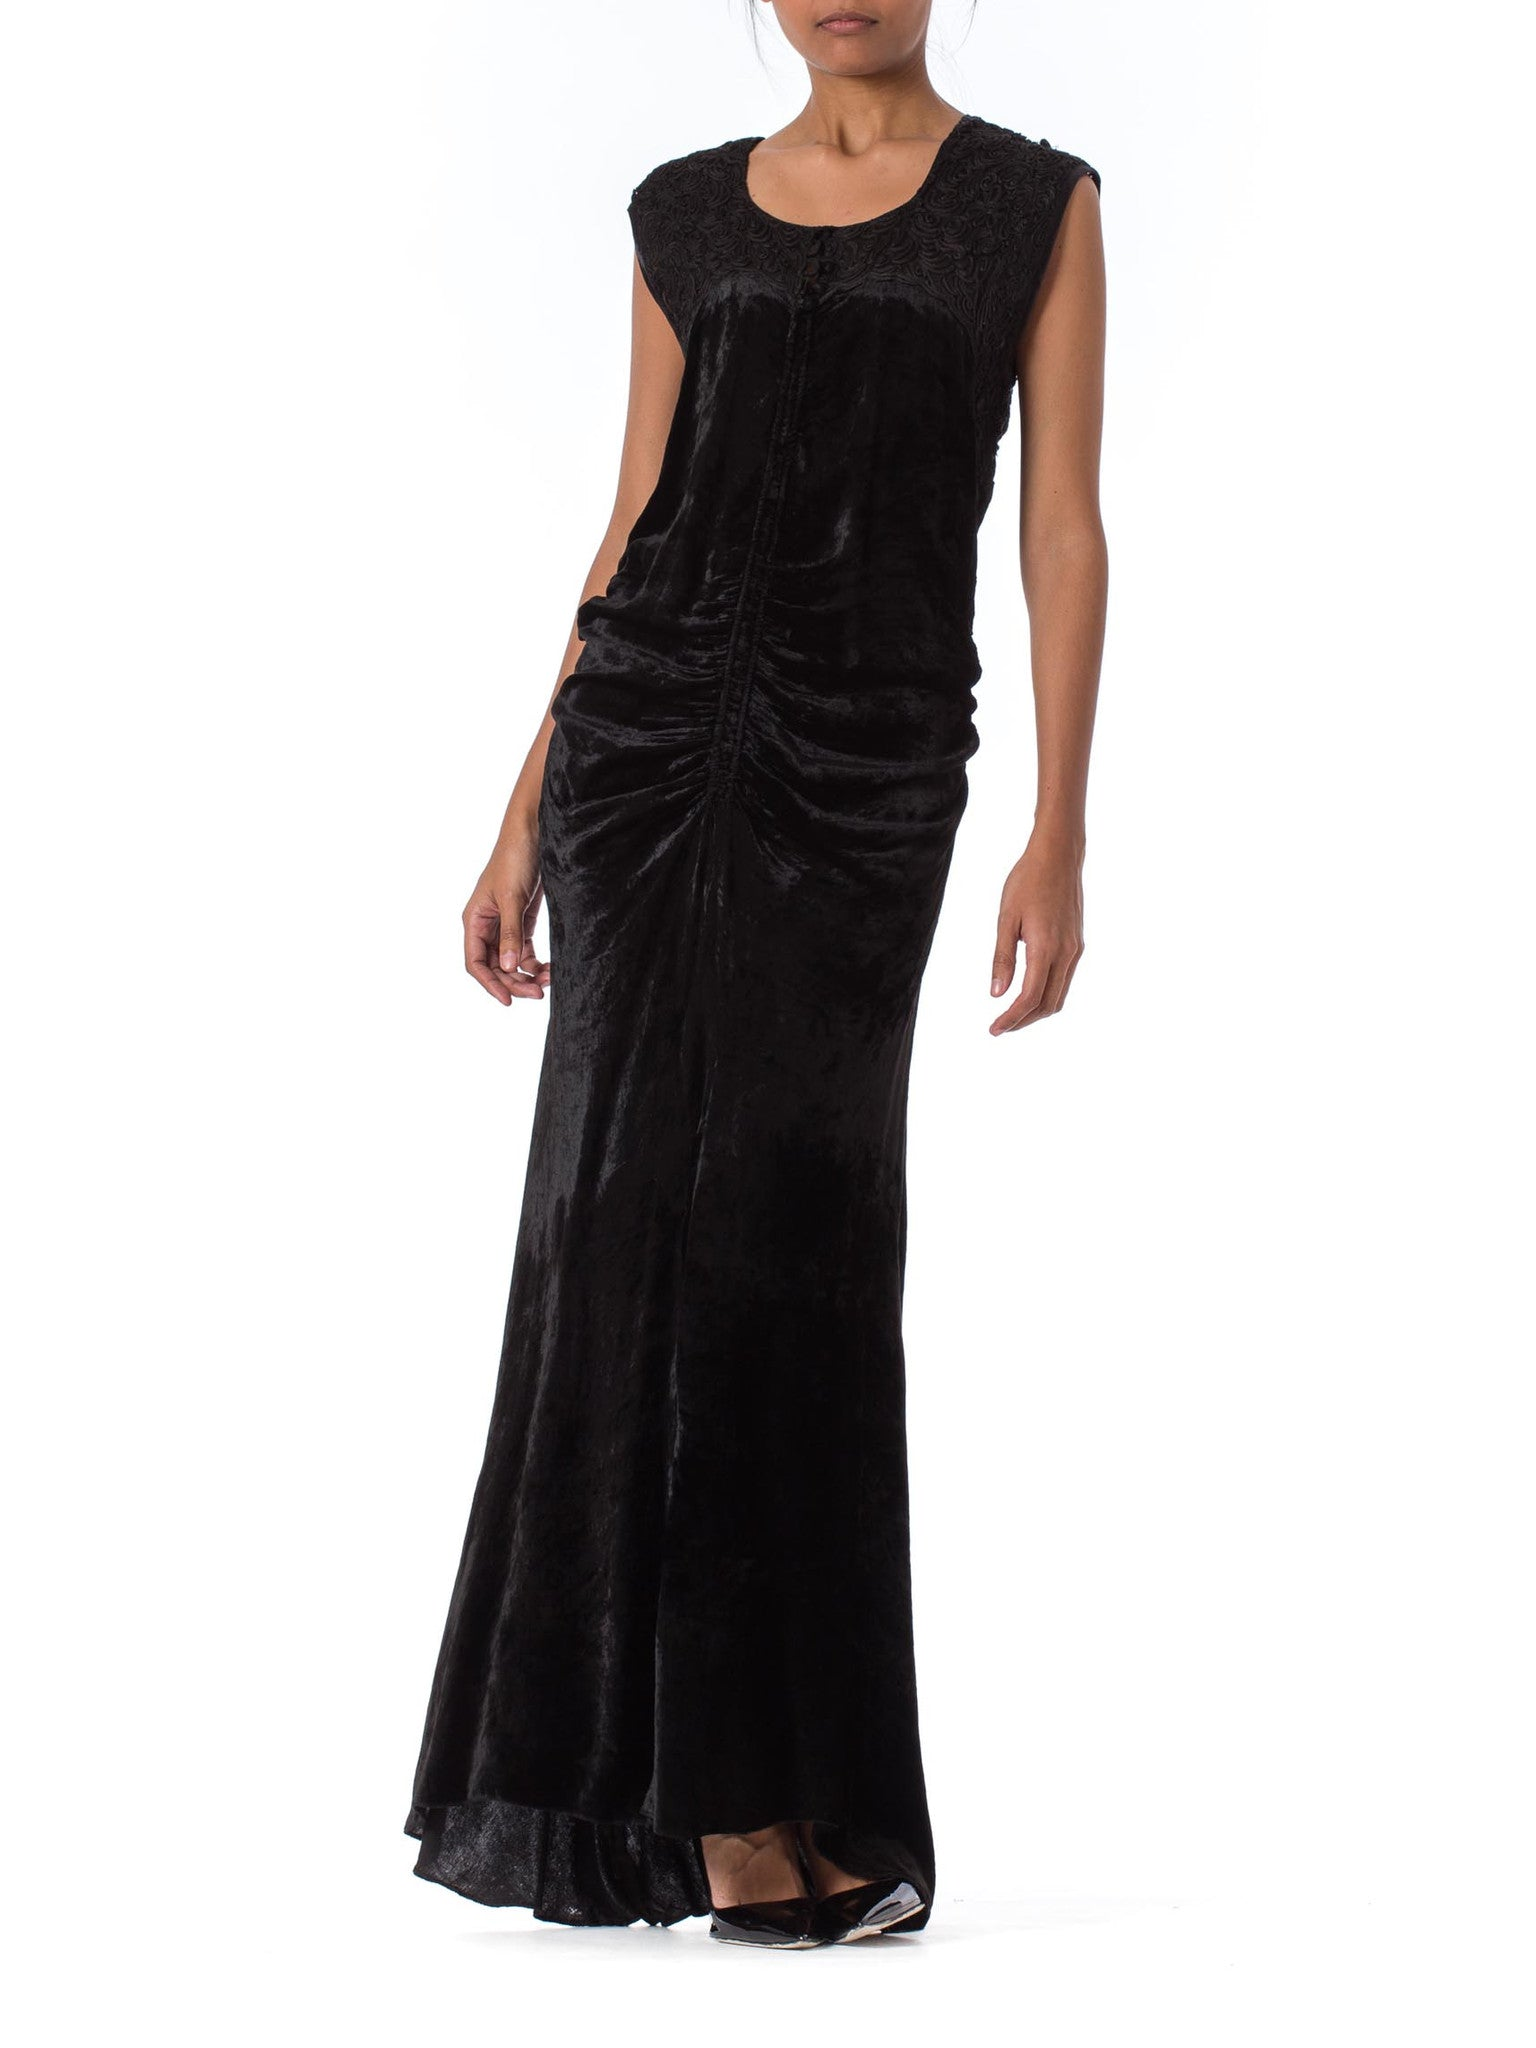 1930s Style Bias Cut Black Velvet and Lace Gown from 1990s